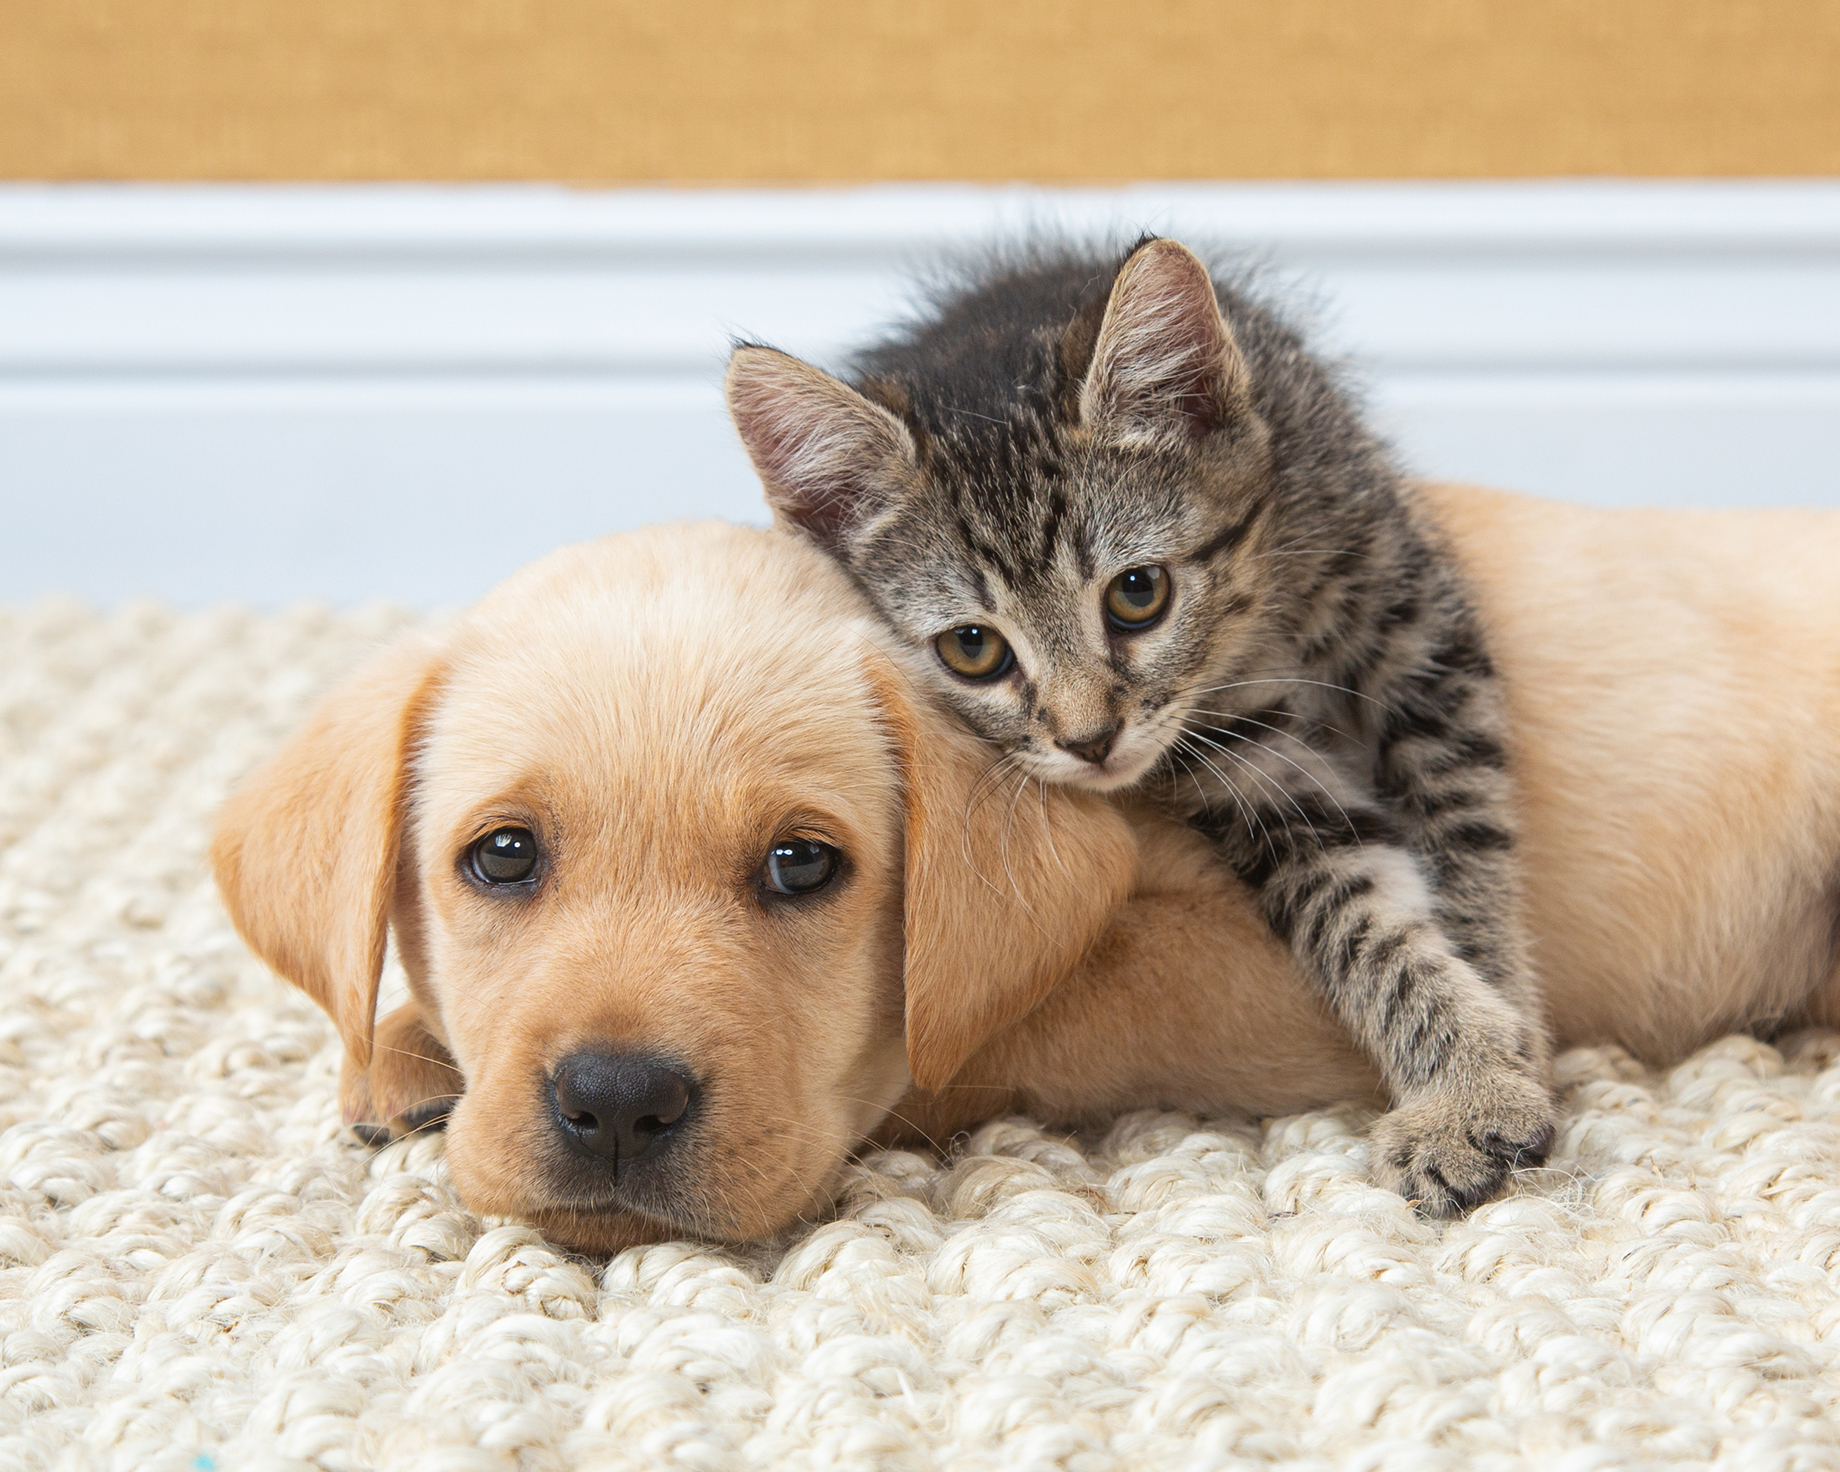 Puppy and kitten image photographed by Mark Rodgers.